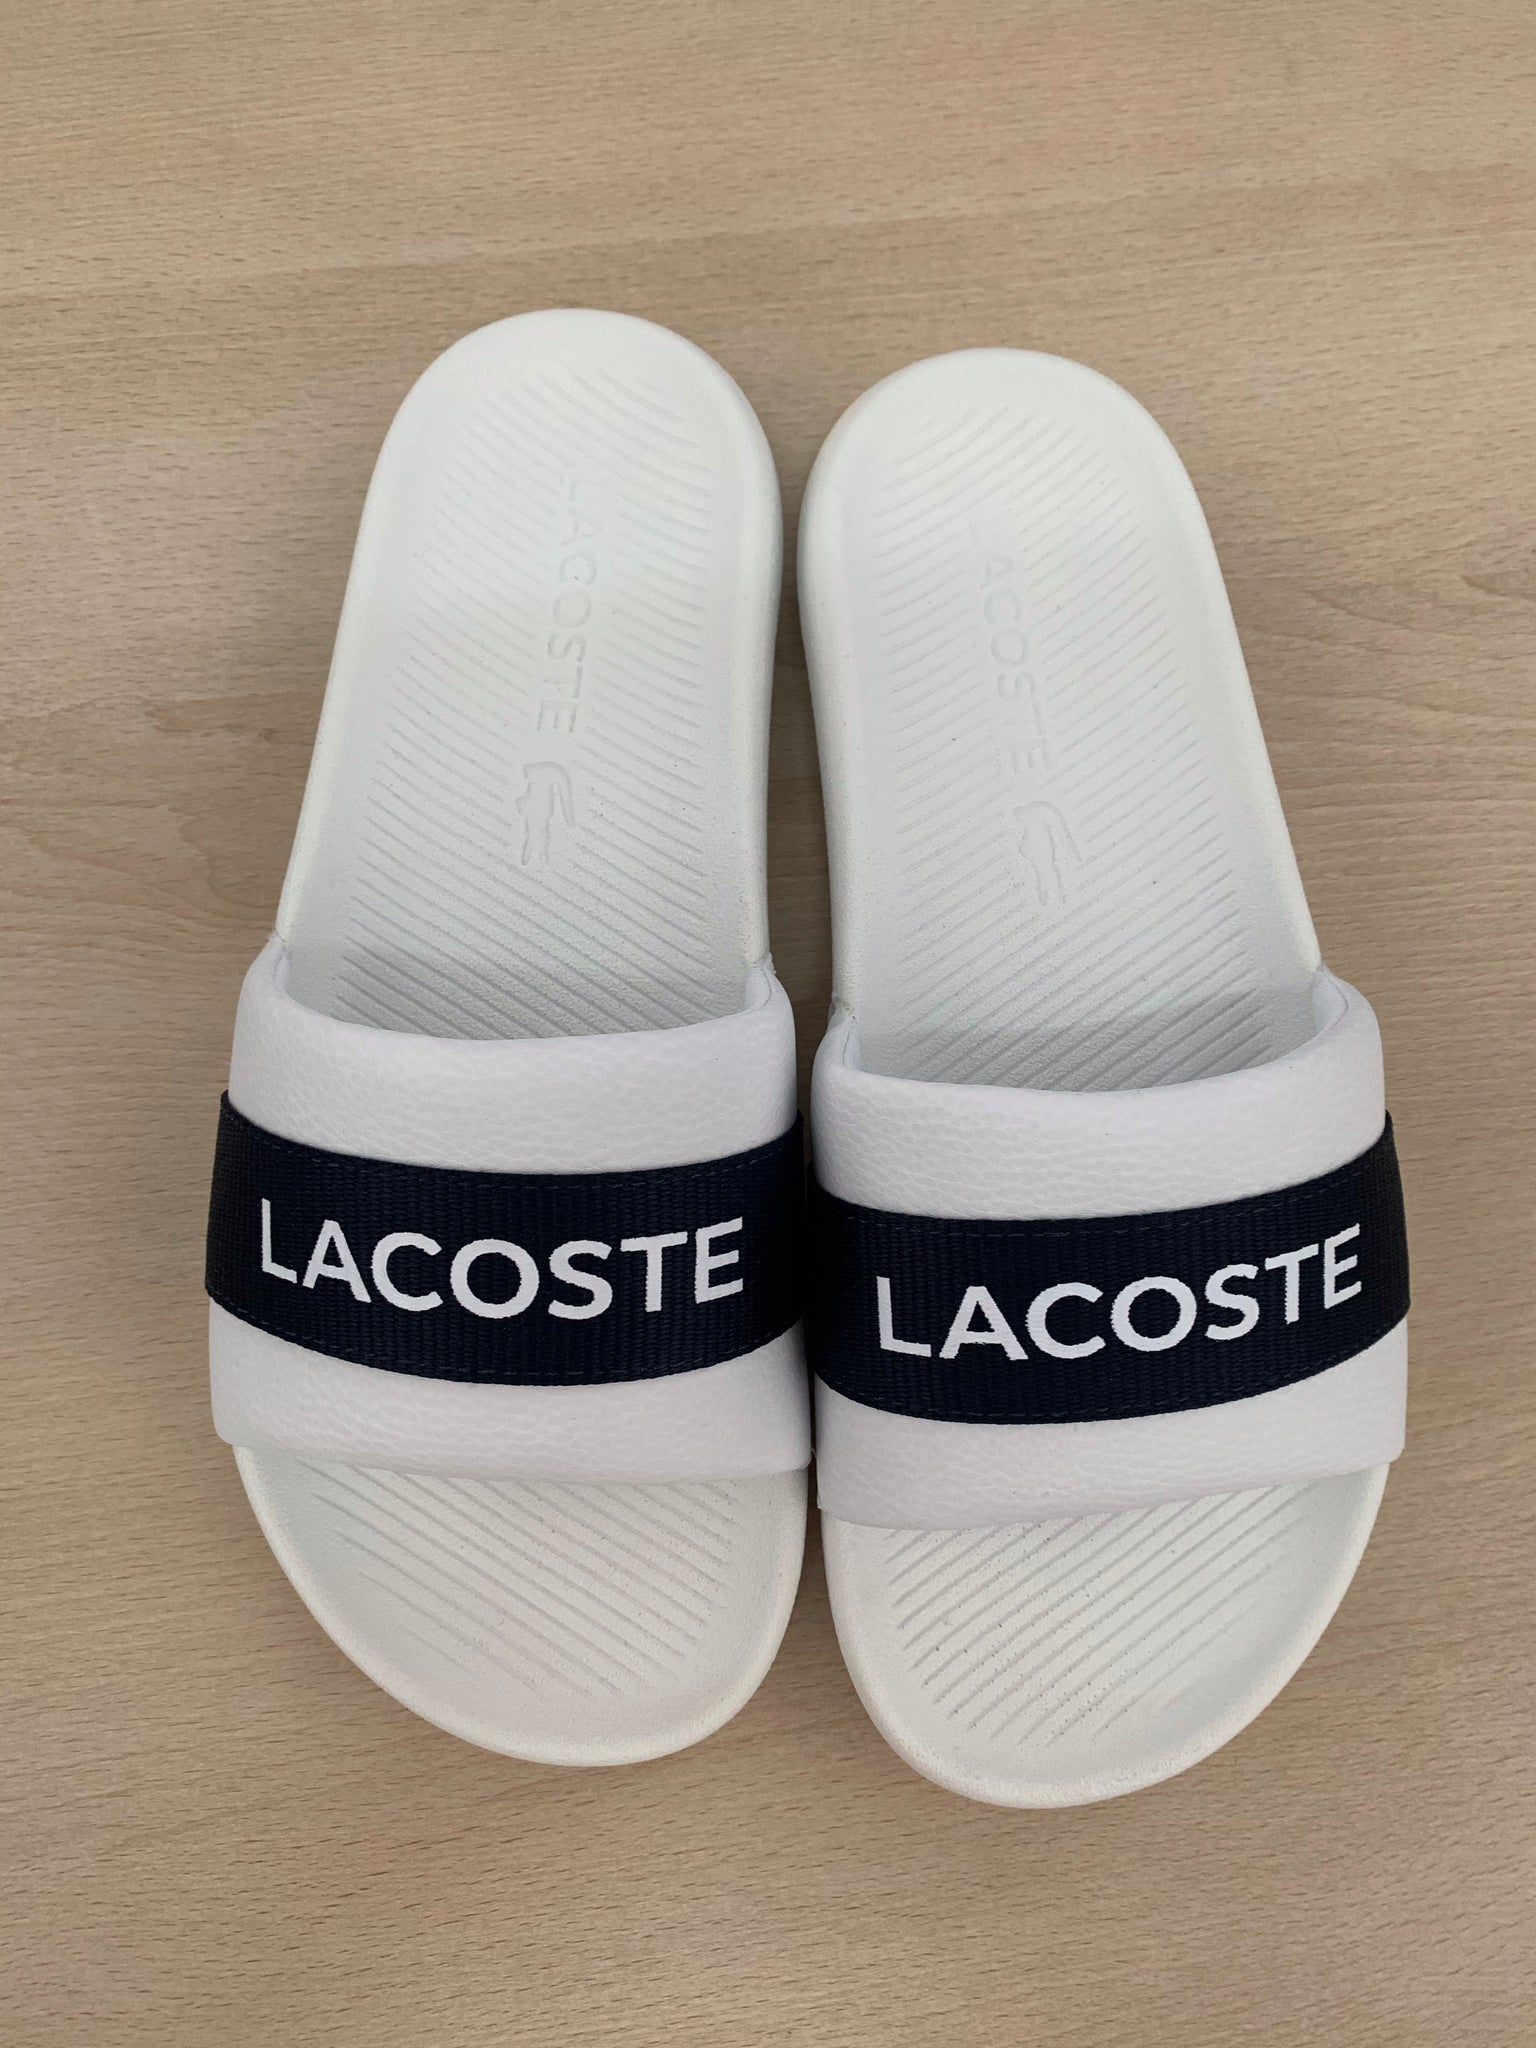 LACOSTE - white and navy slides